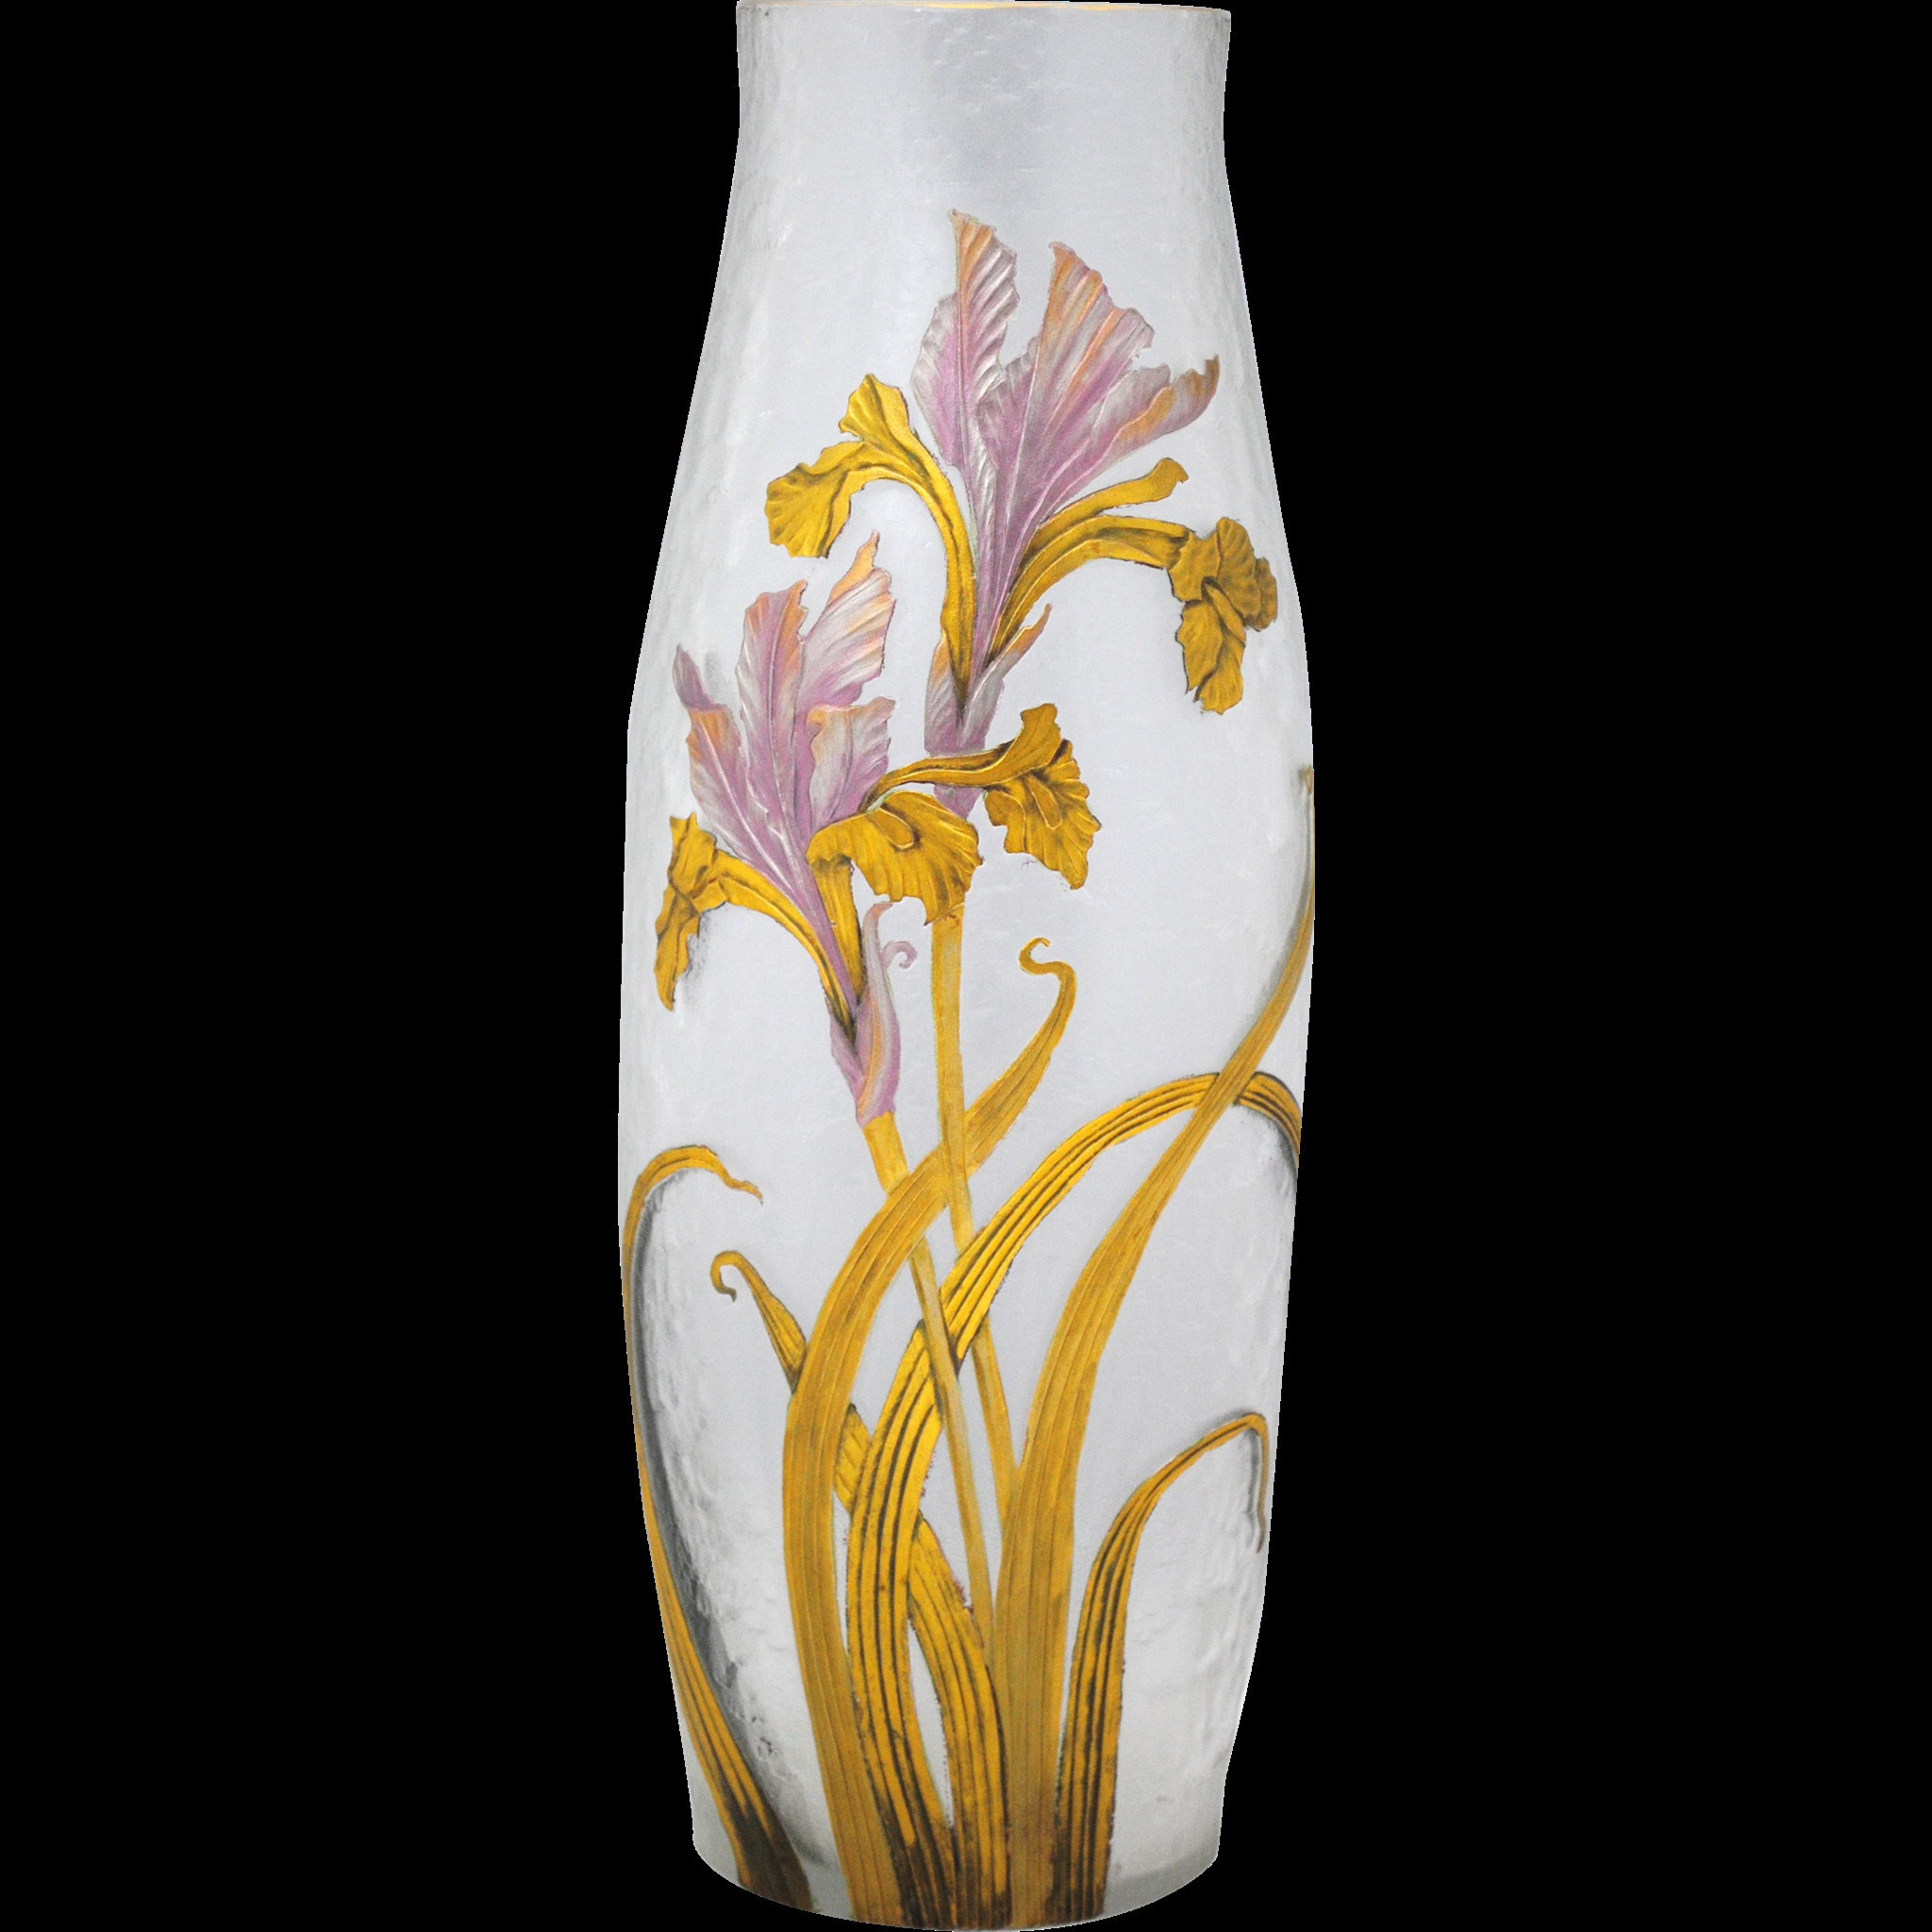 glass vase with lid of glass wall art and decor best of metal wall art panels fresh 1 with regard to glass wall art and decor elegant tall art glass vase fresh metal wall art panels fresh